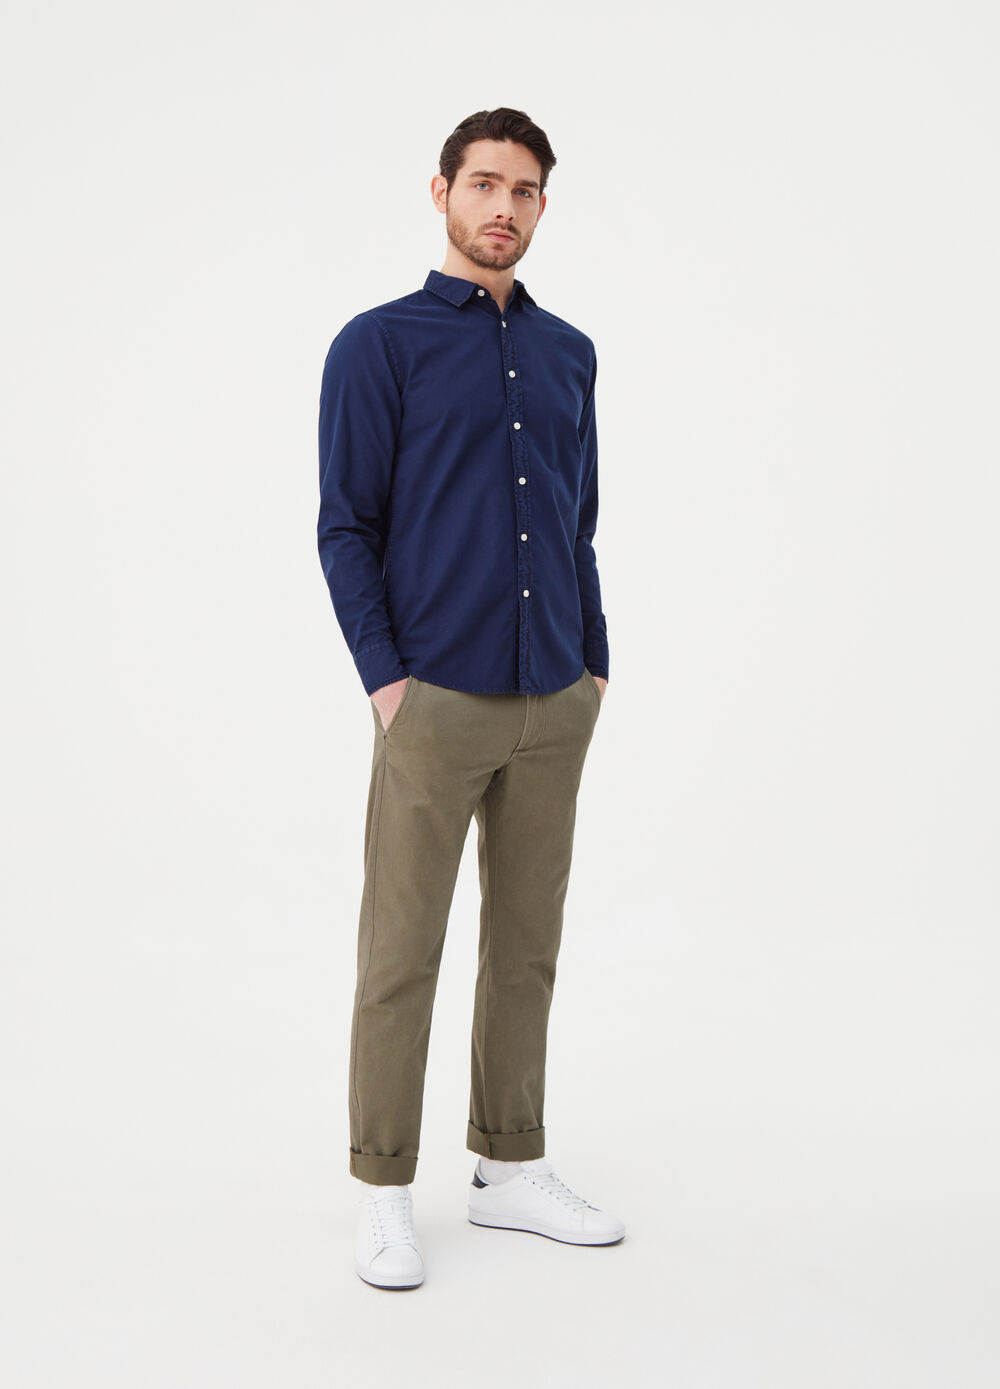 Regular-fit shirt in solid colour Oxford